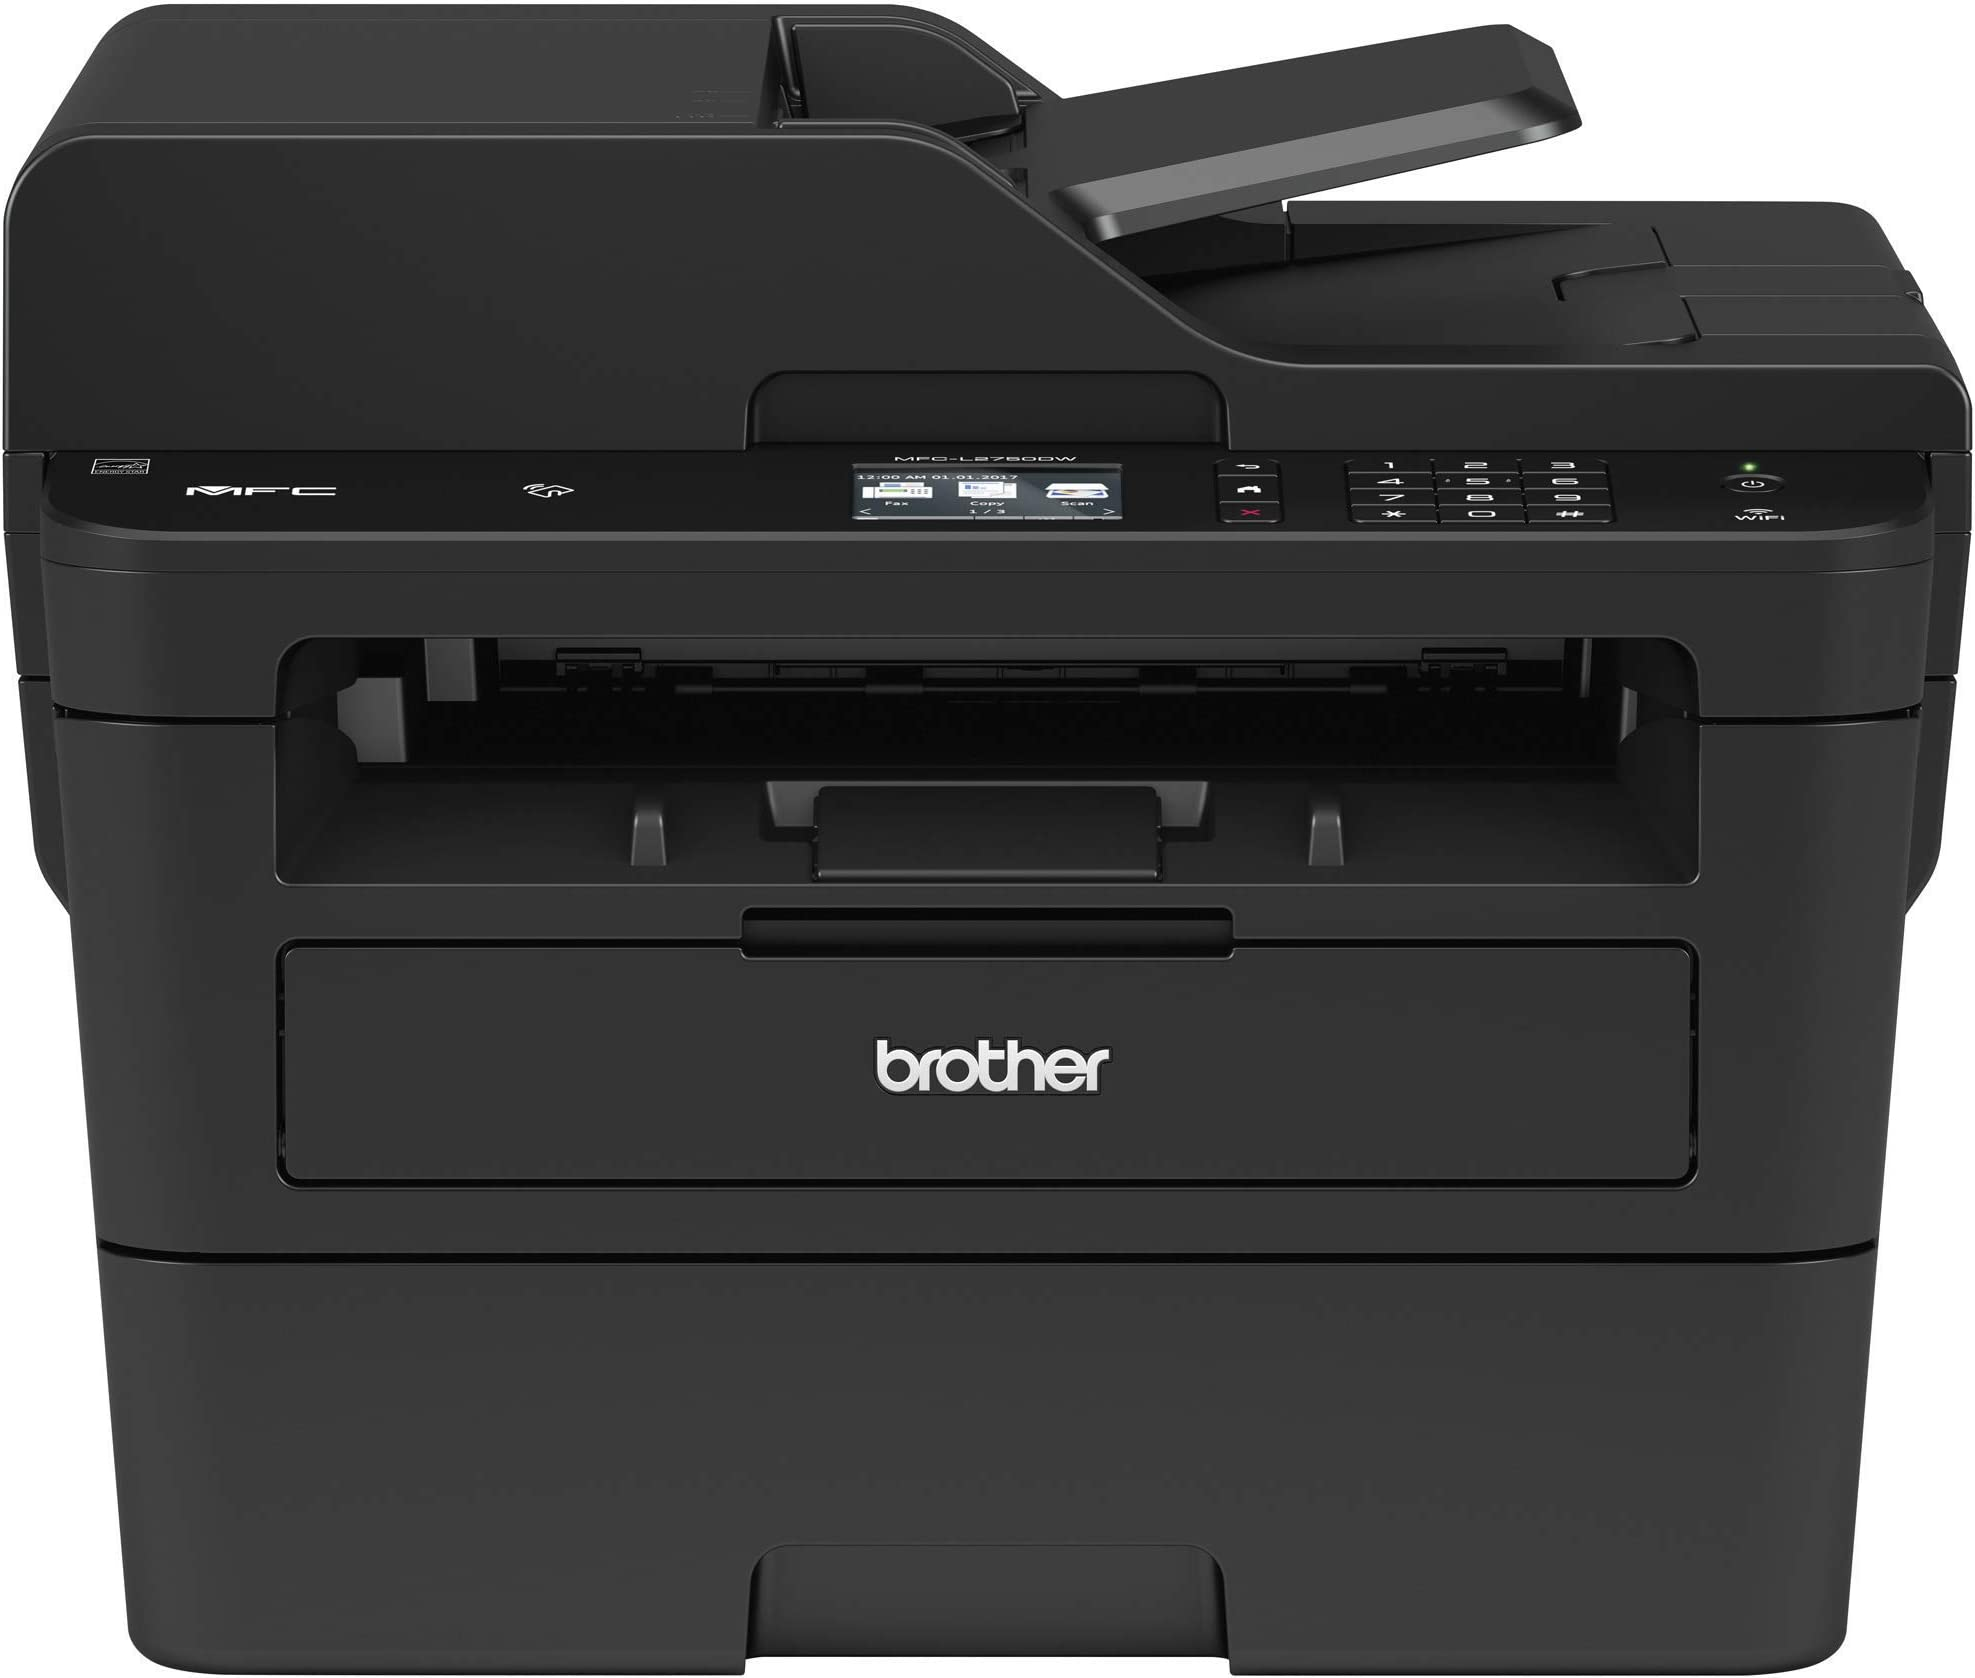 Brother Printer RMFCL2750DW Monochrome Printer, Refurbished